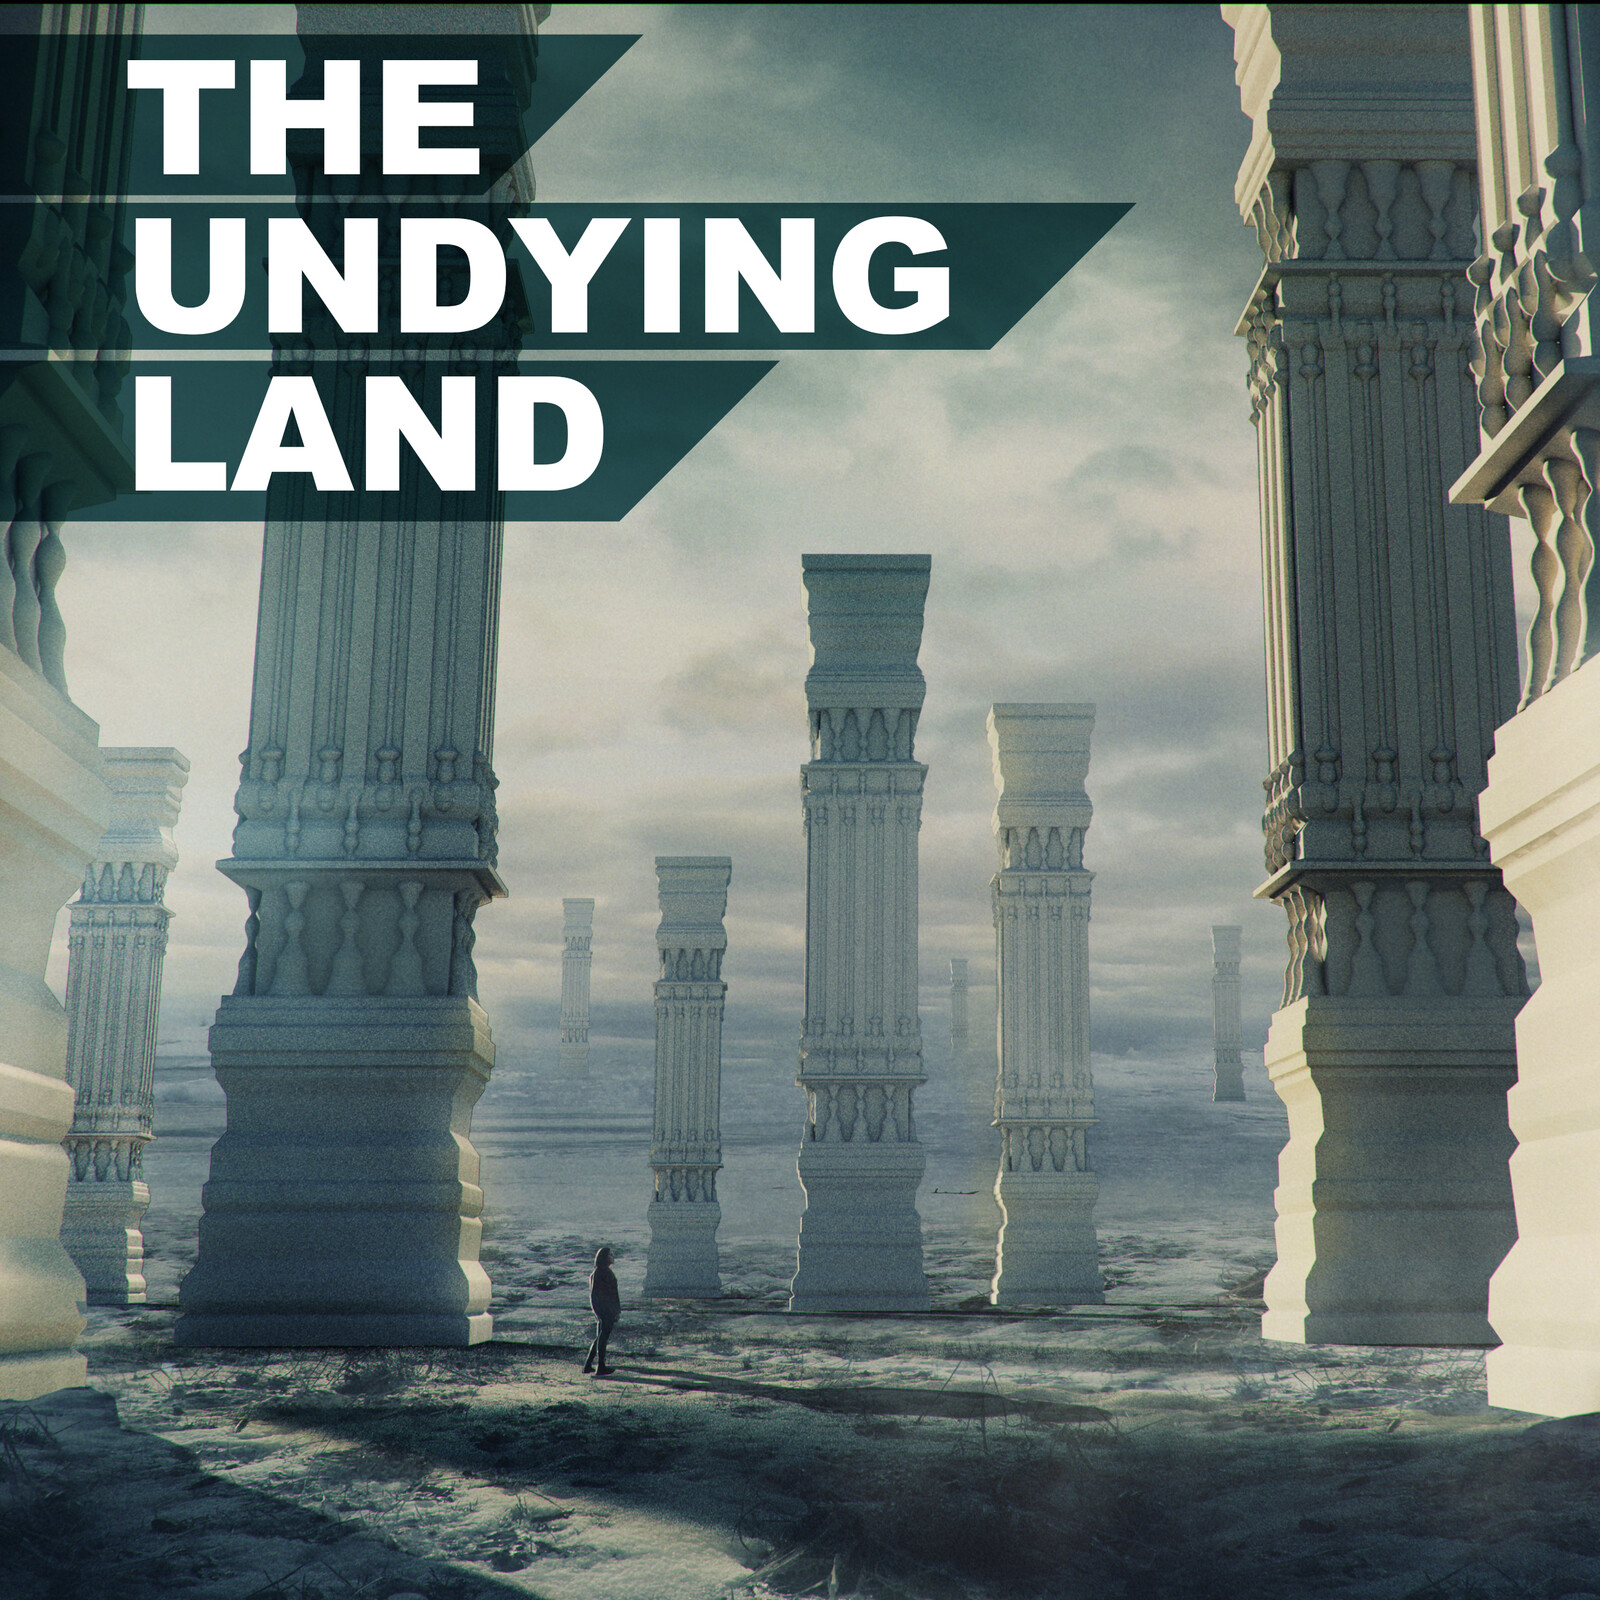 Undying Land